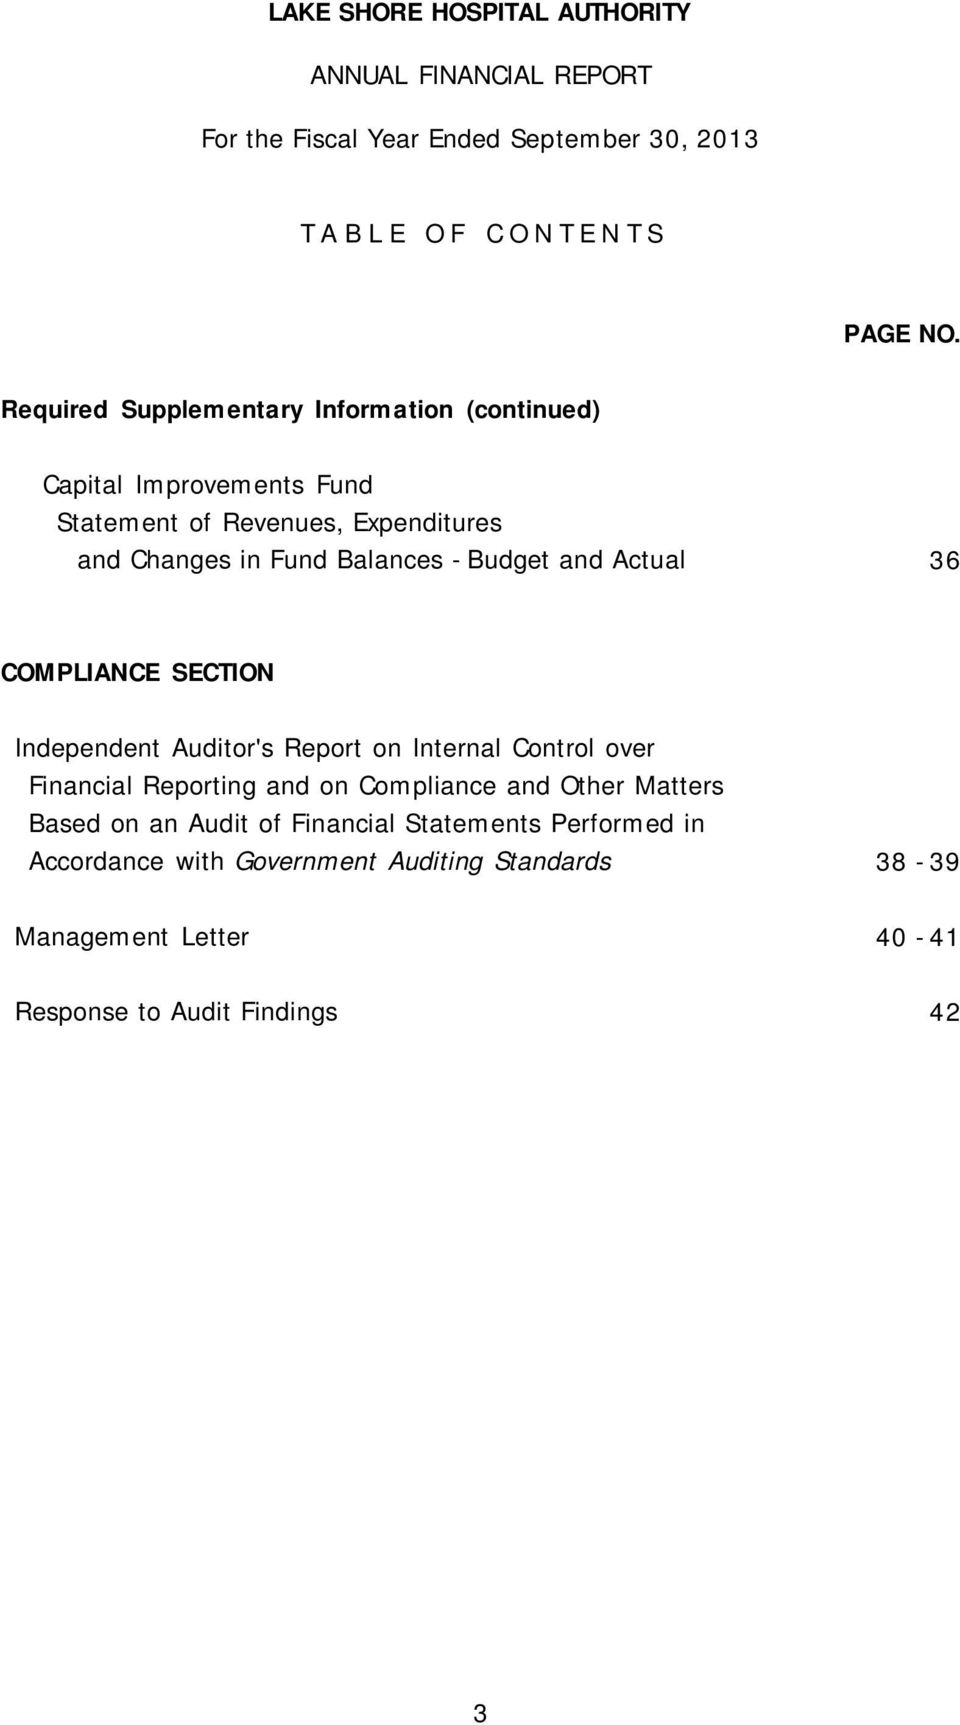 and Actual 36 COMPLIANCE SECTION Independent Auditor's Report on Internal Control over Financial Reporting and on Compliance and Other Matters